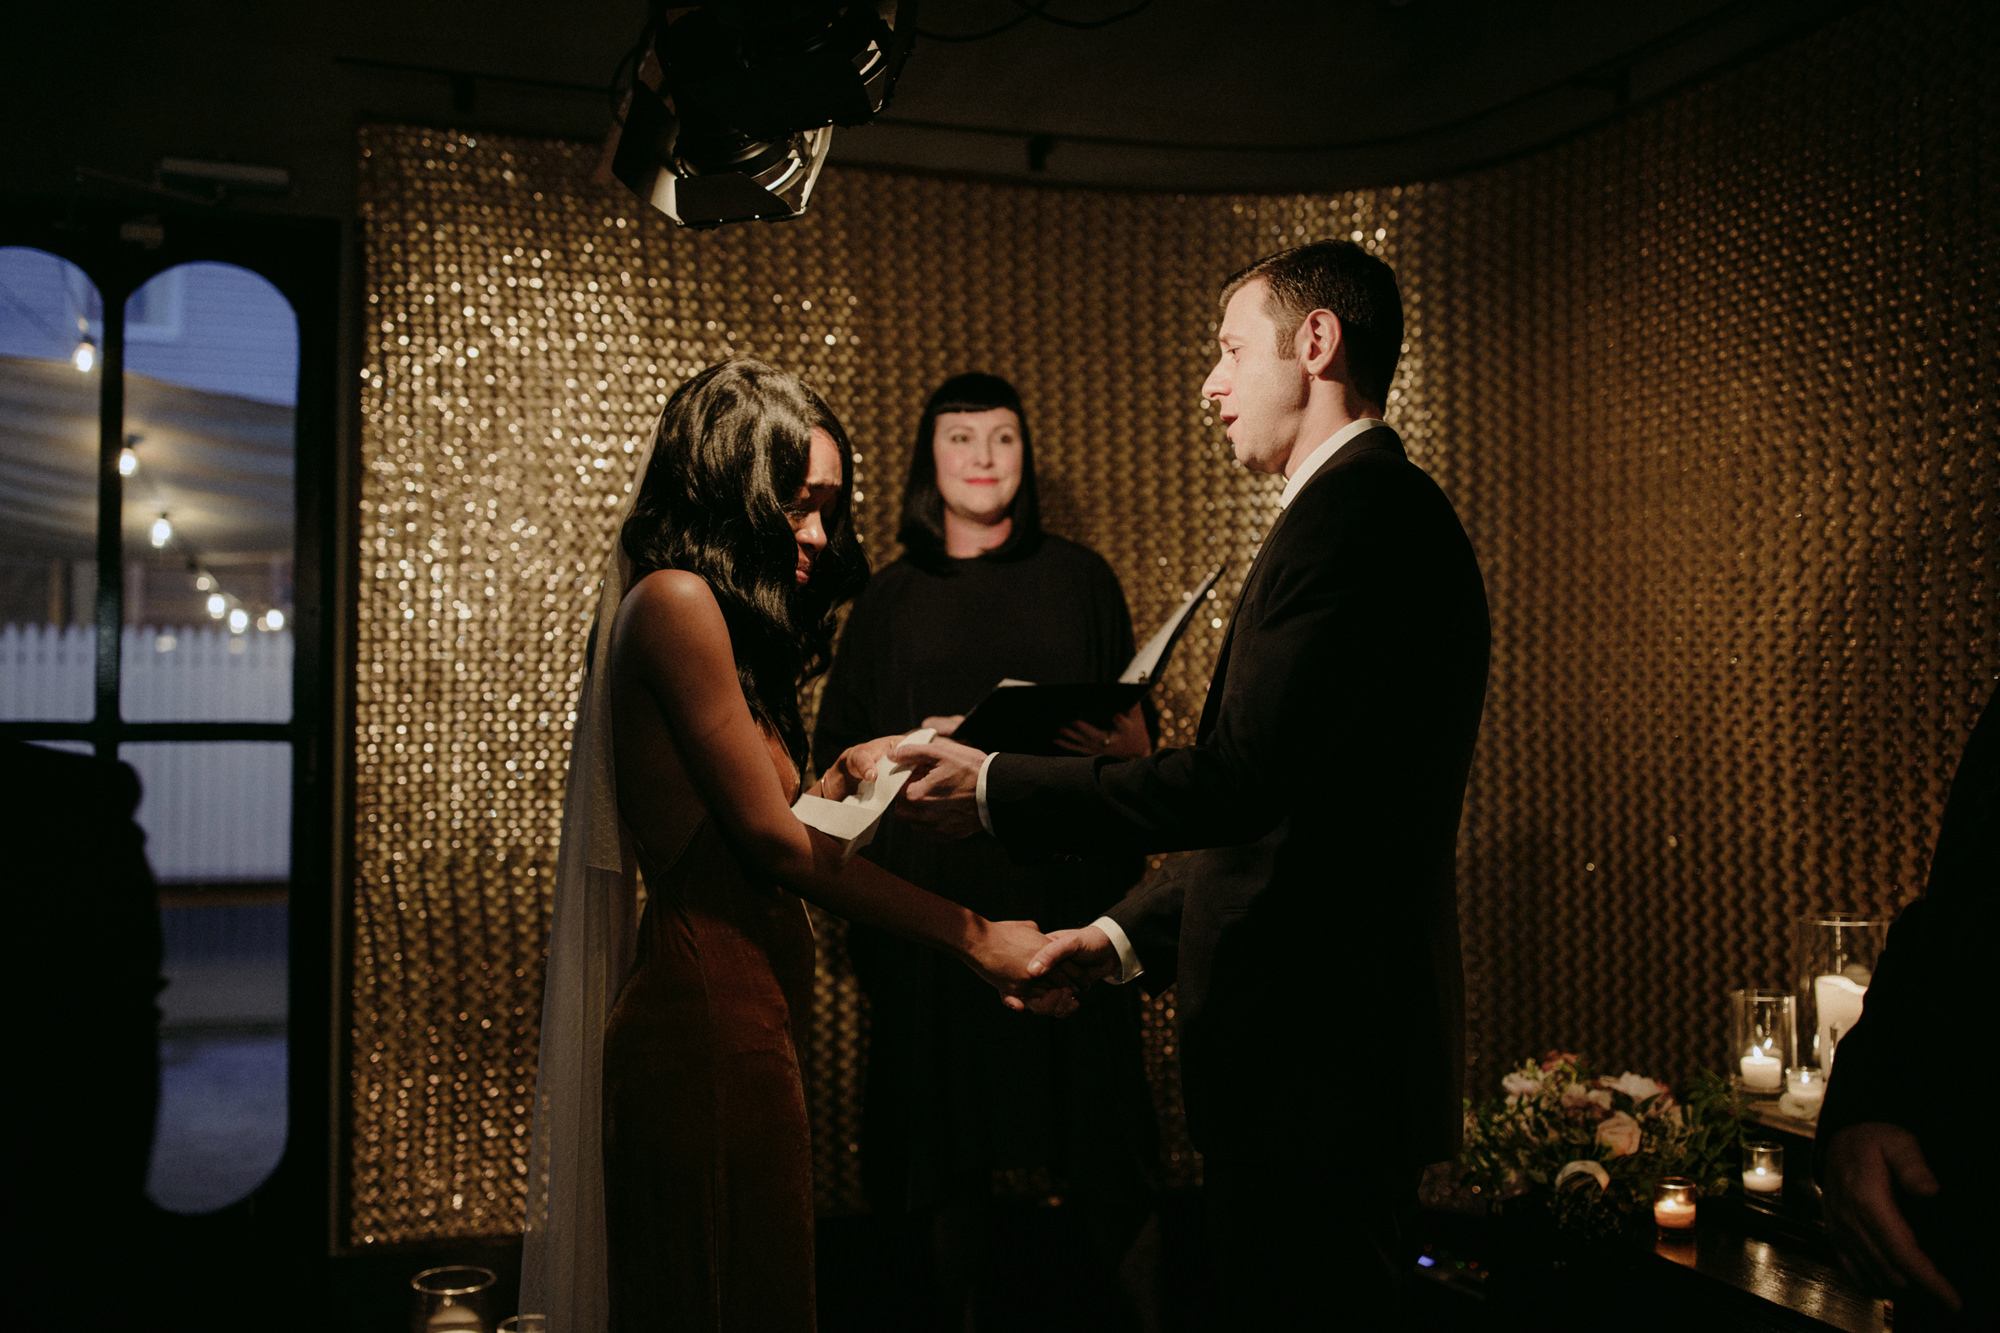 BROOKLYN_ELOPEMENT_SAMMBLAKE_NDE_506.jpg